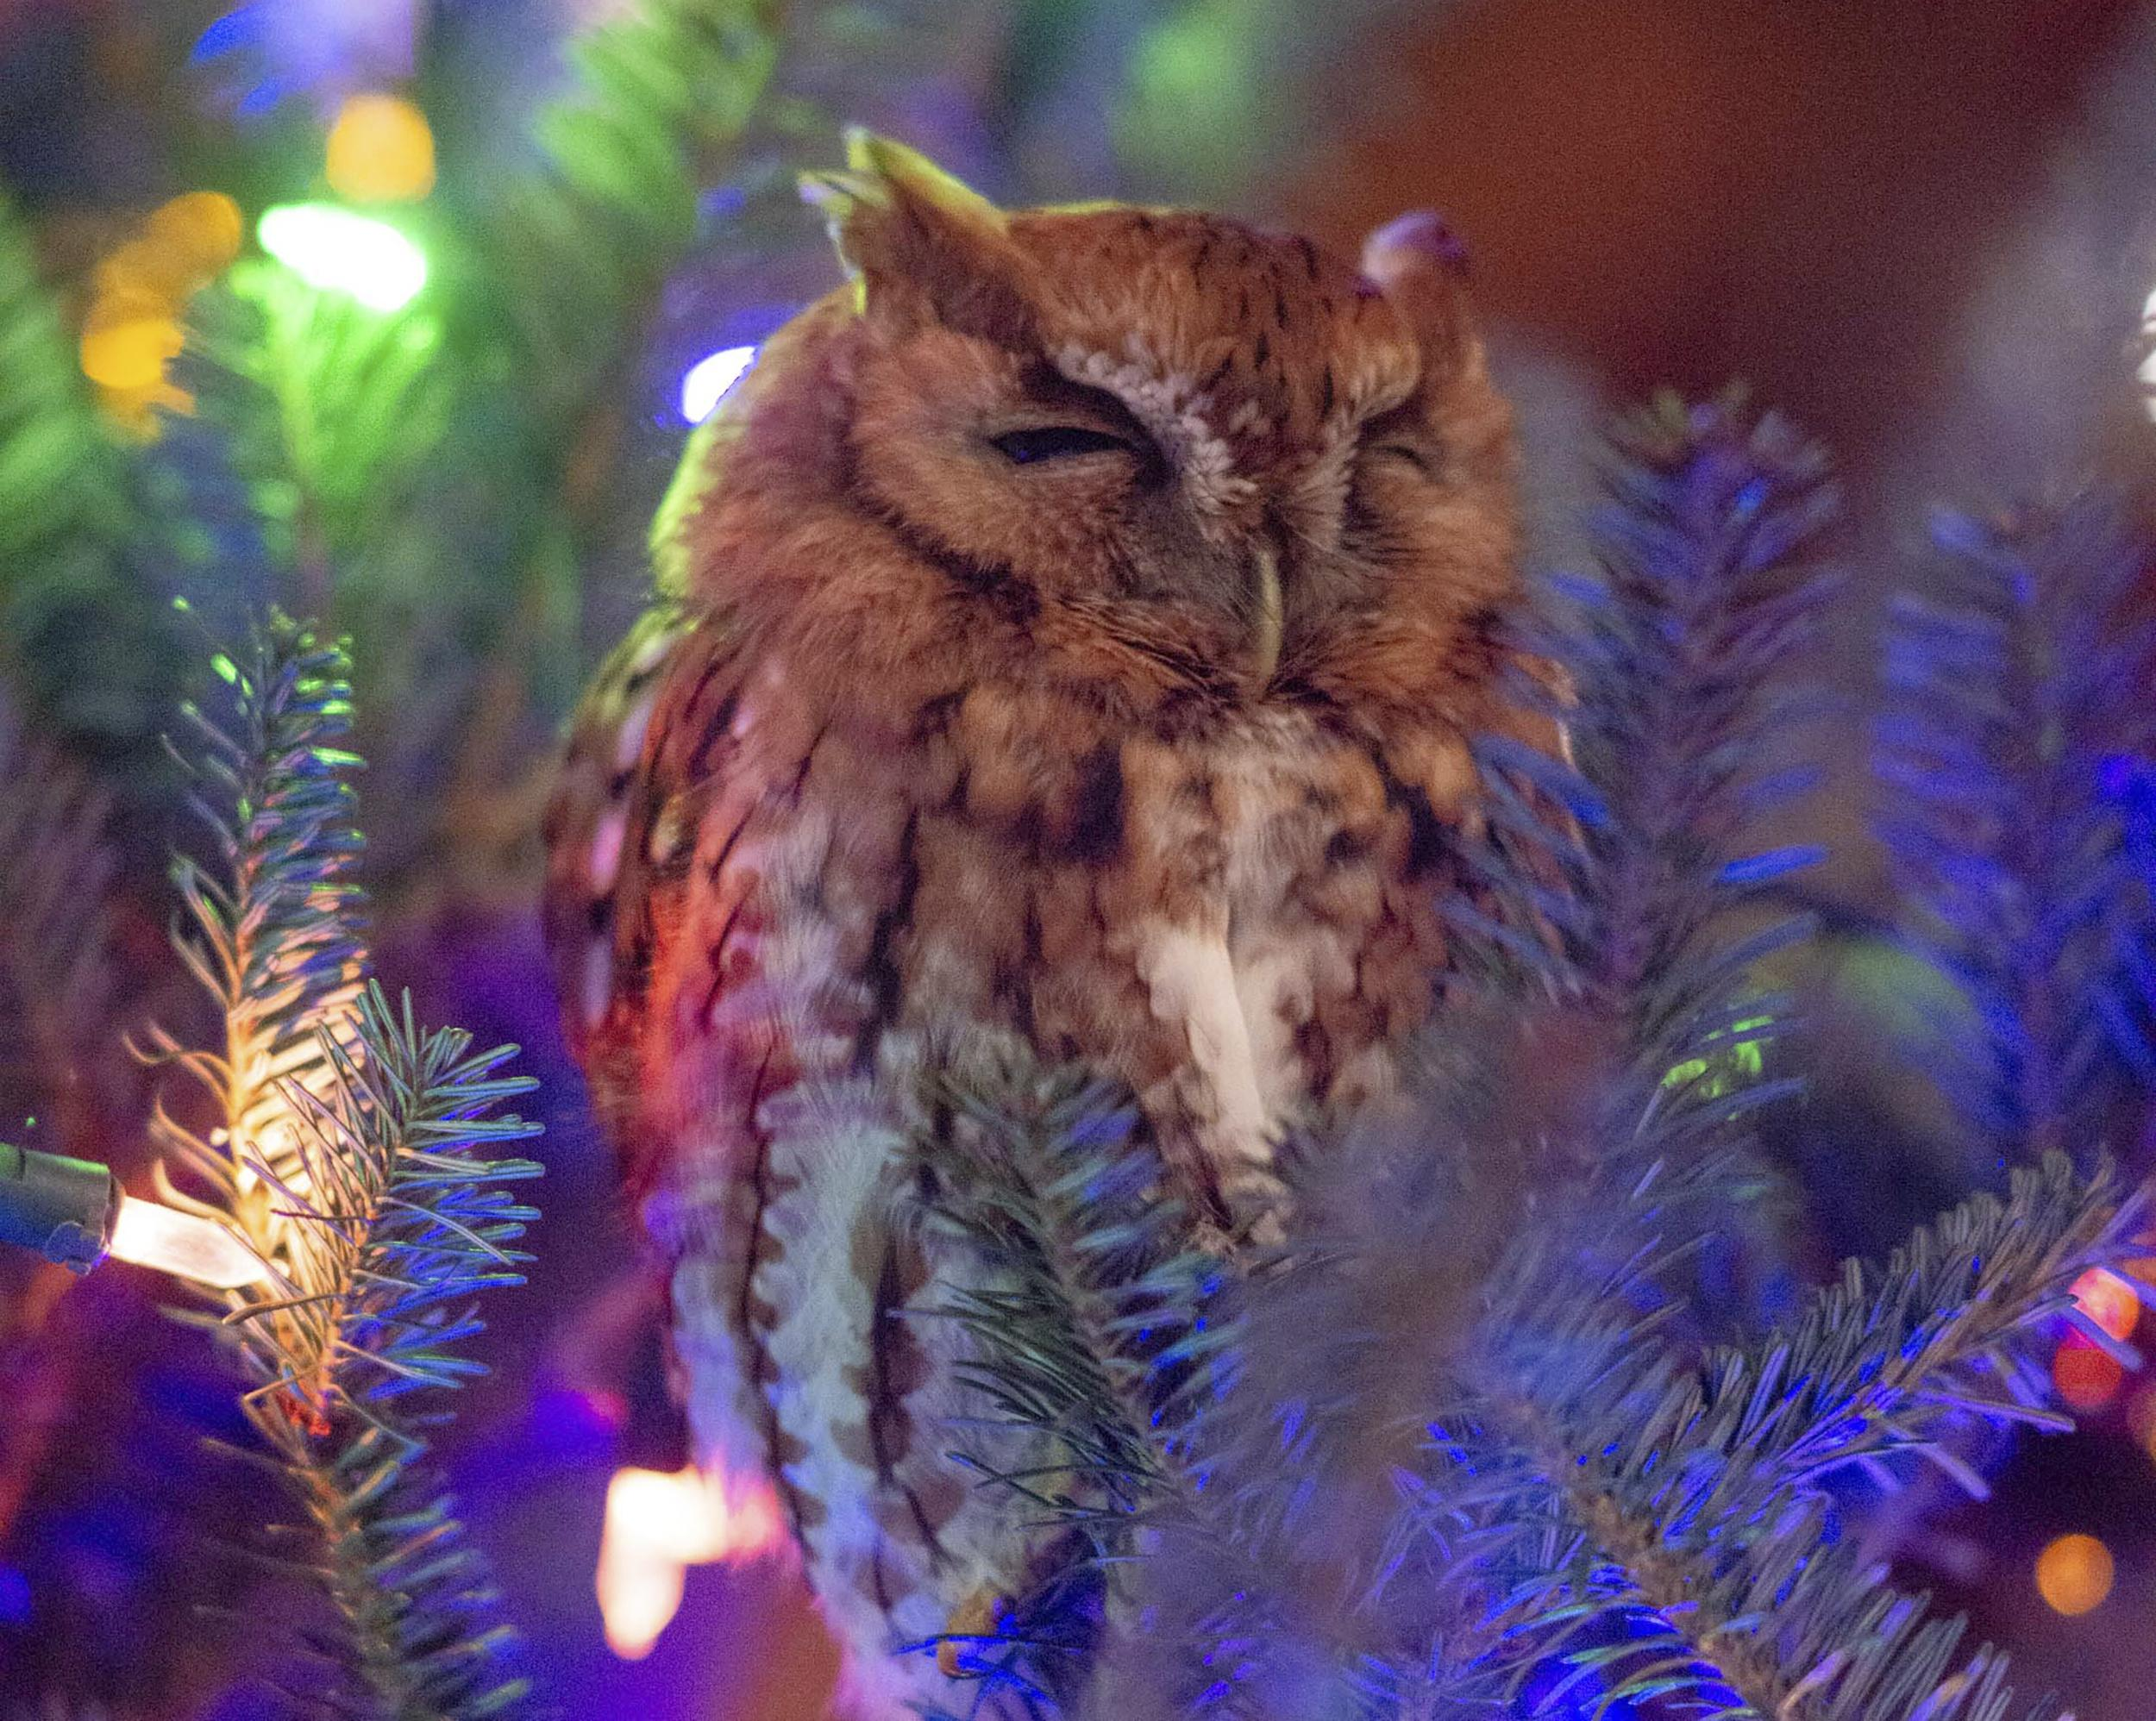 Family finds owl in Christmas tree after a week: 'He was hugging the trunk'